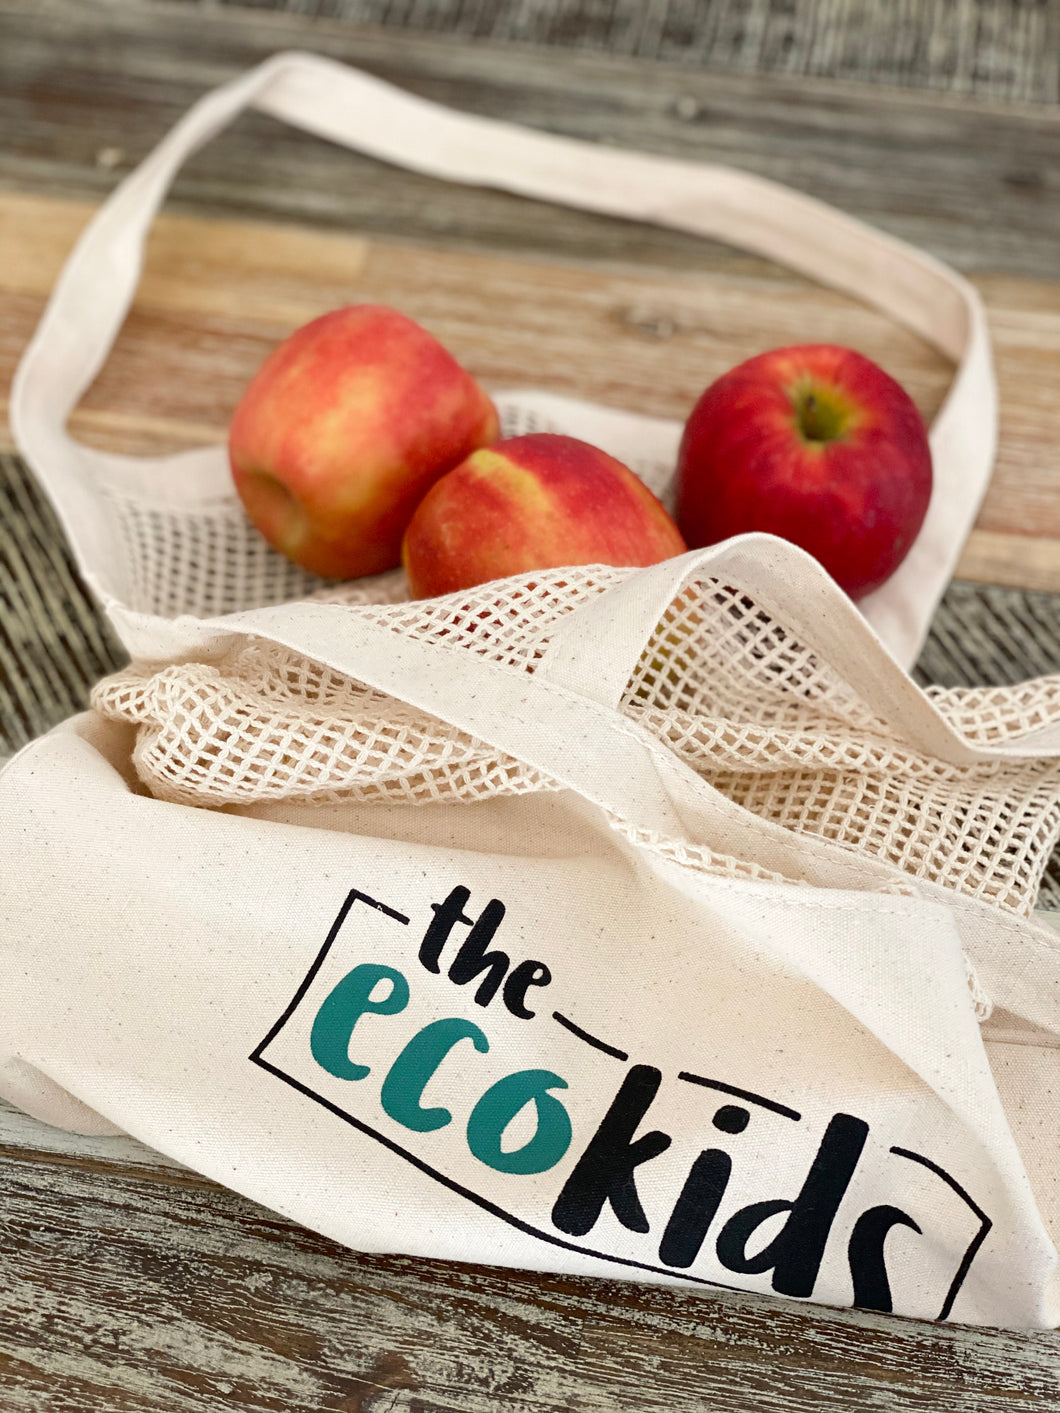 100% Organic Cotton Produce Bag